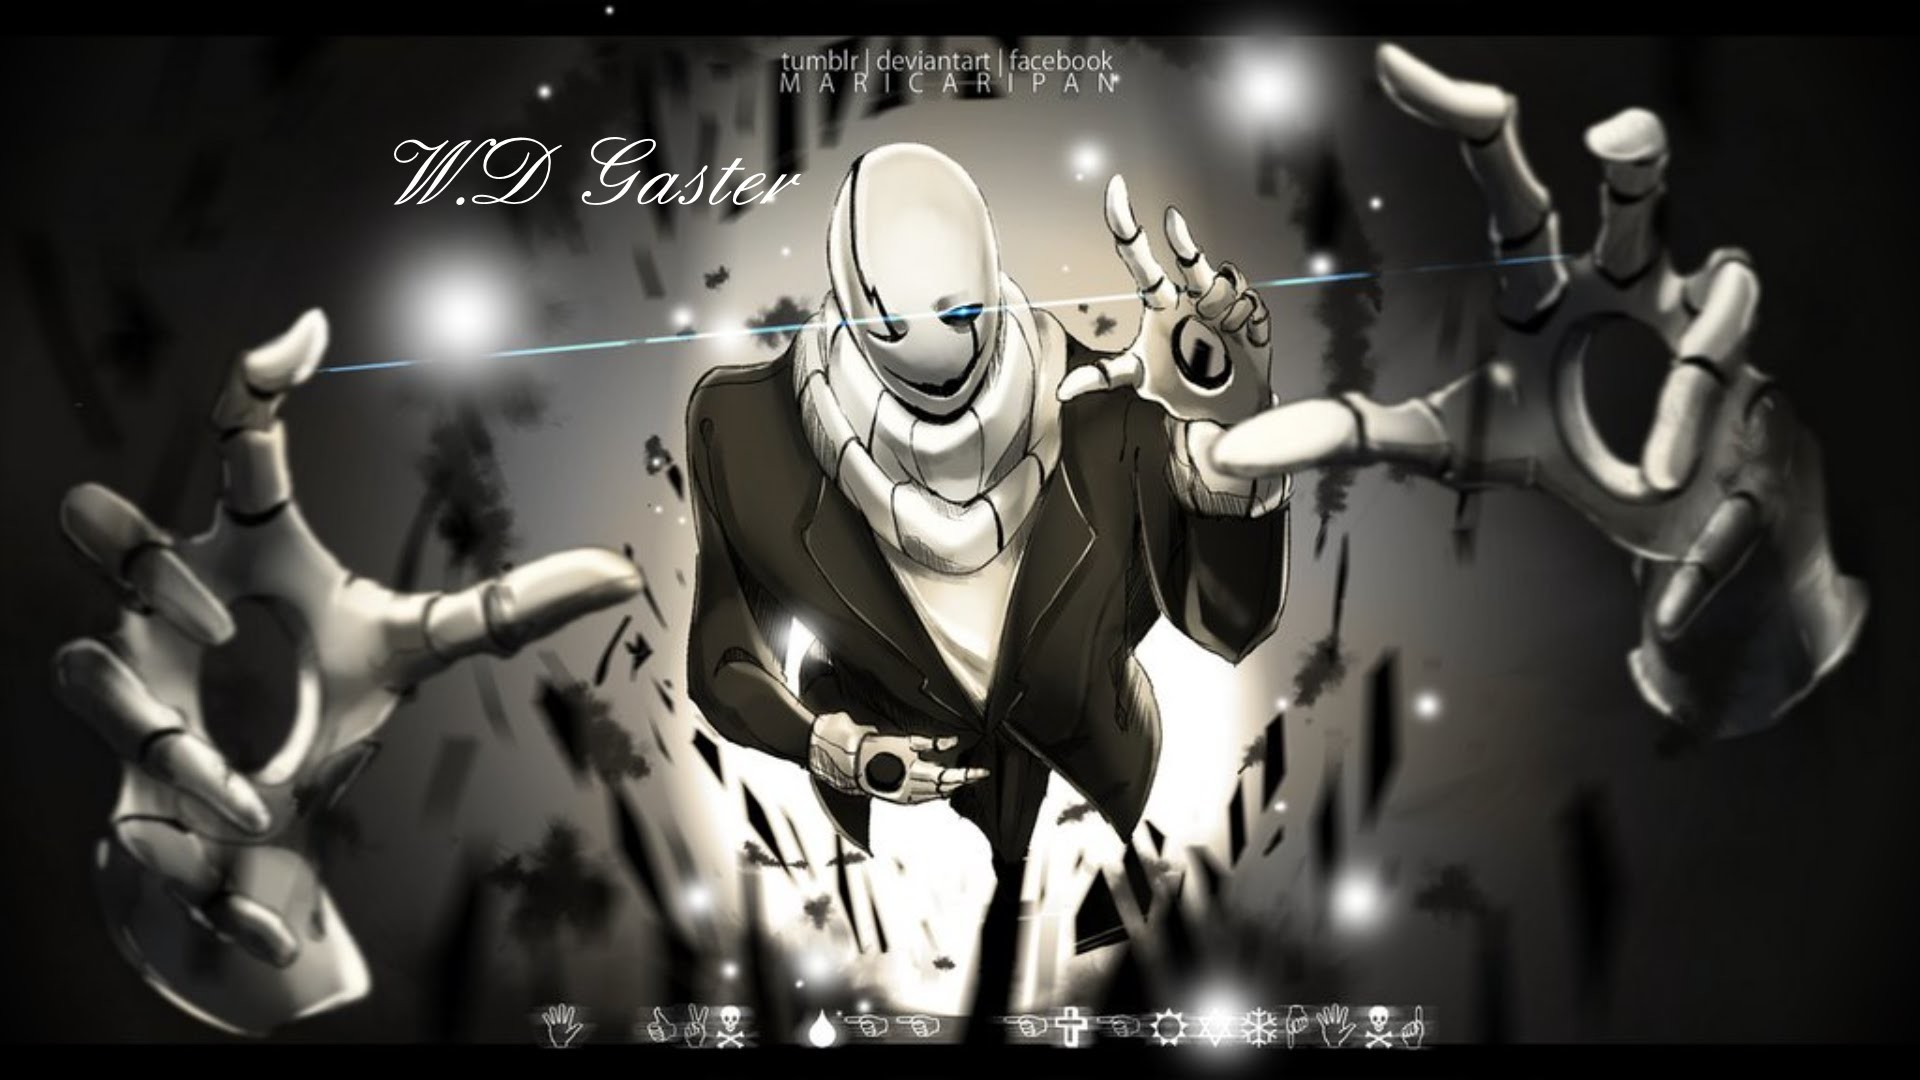 [W.D Gaster] – YouTube